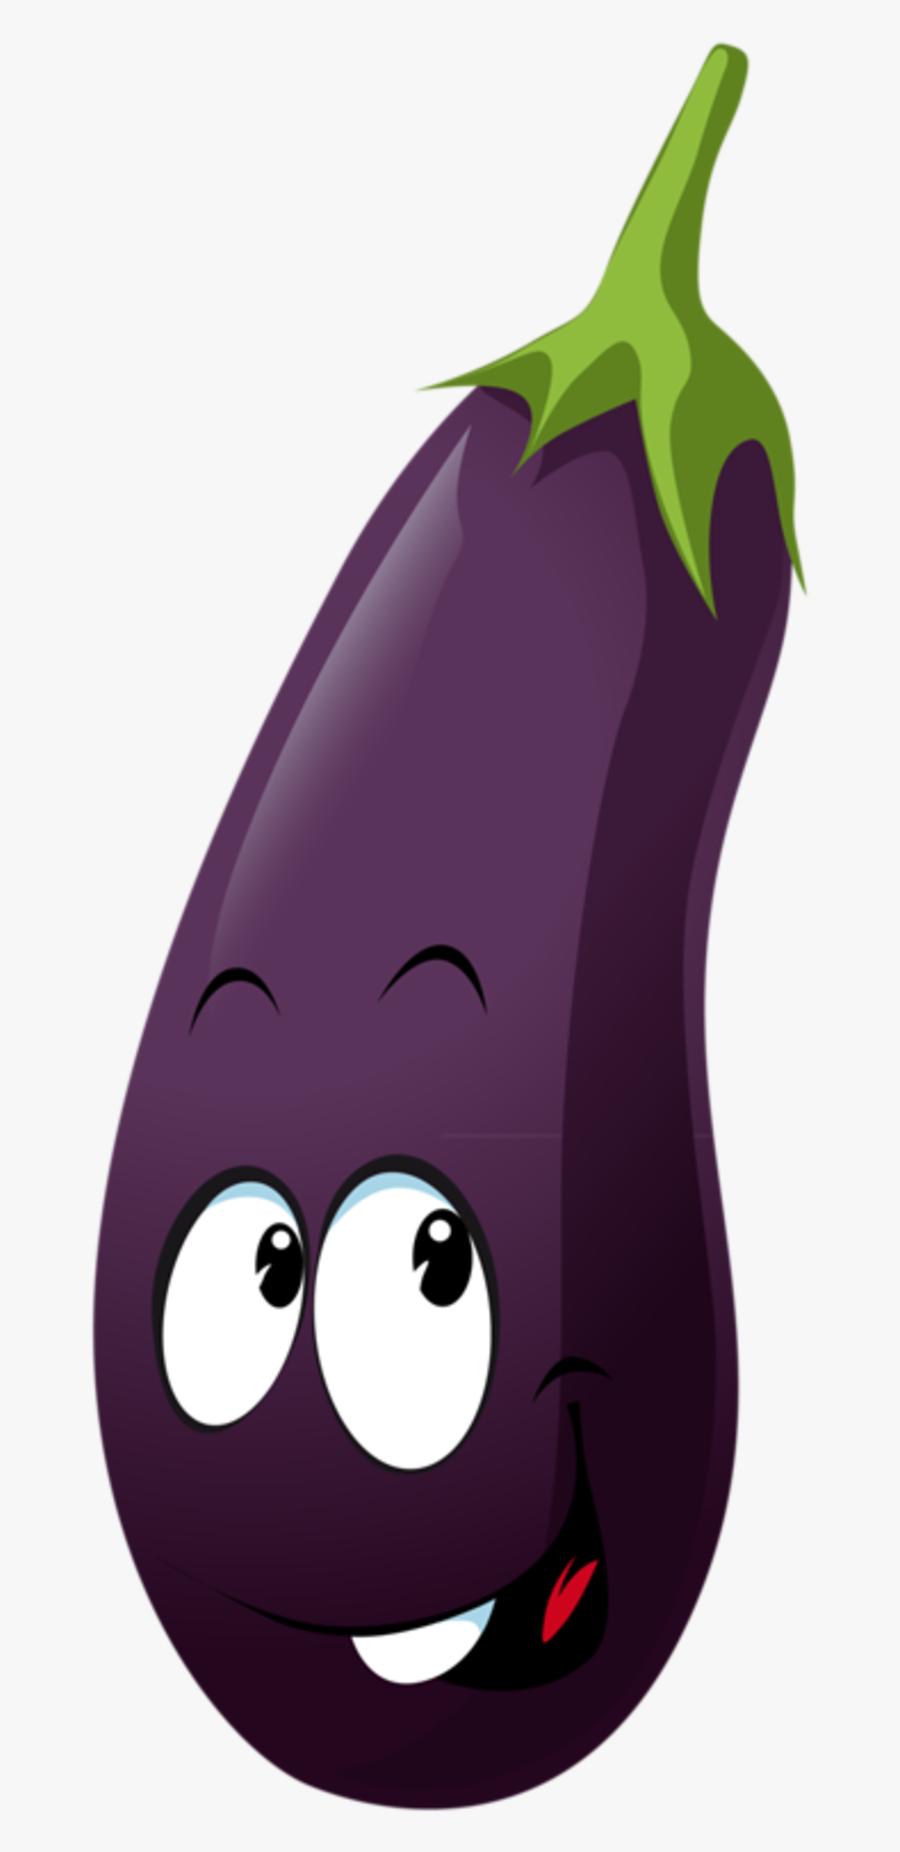 Eggplant Clipart Objects - Fruits And Vegetables Individual, Transparent Clipart